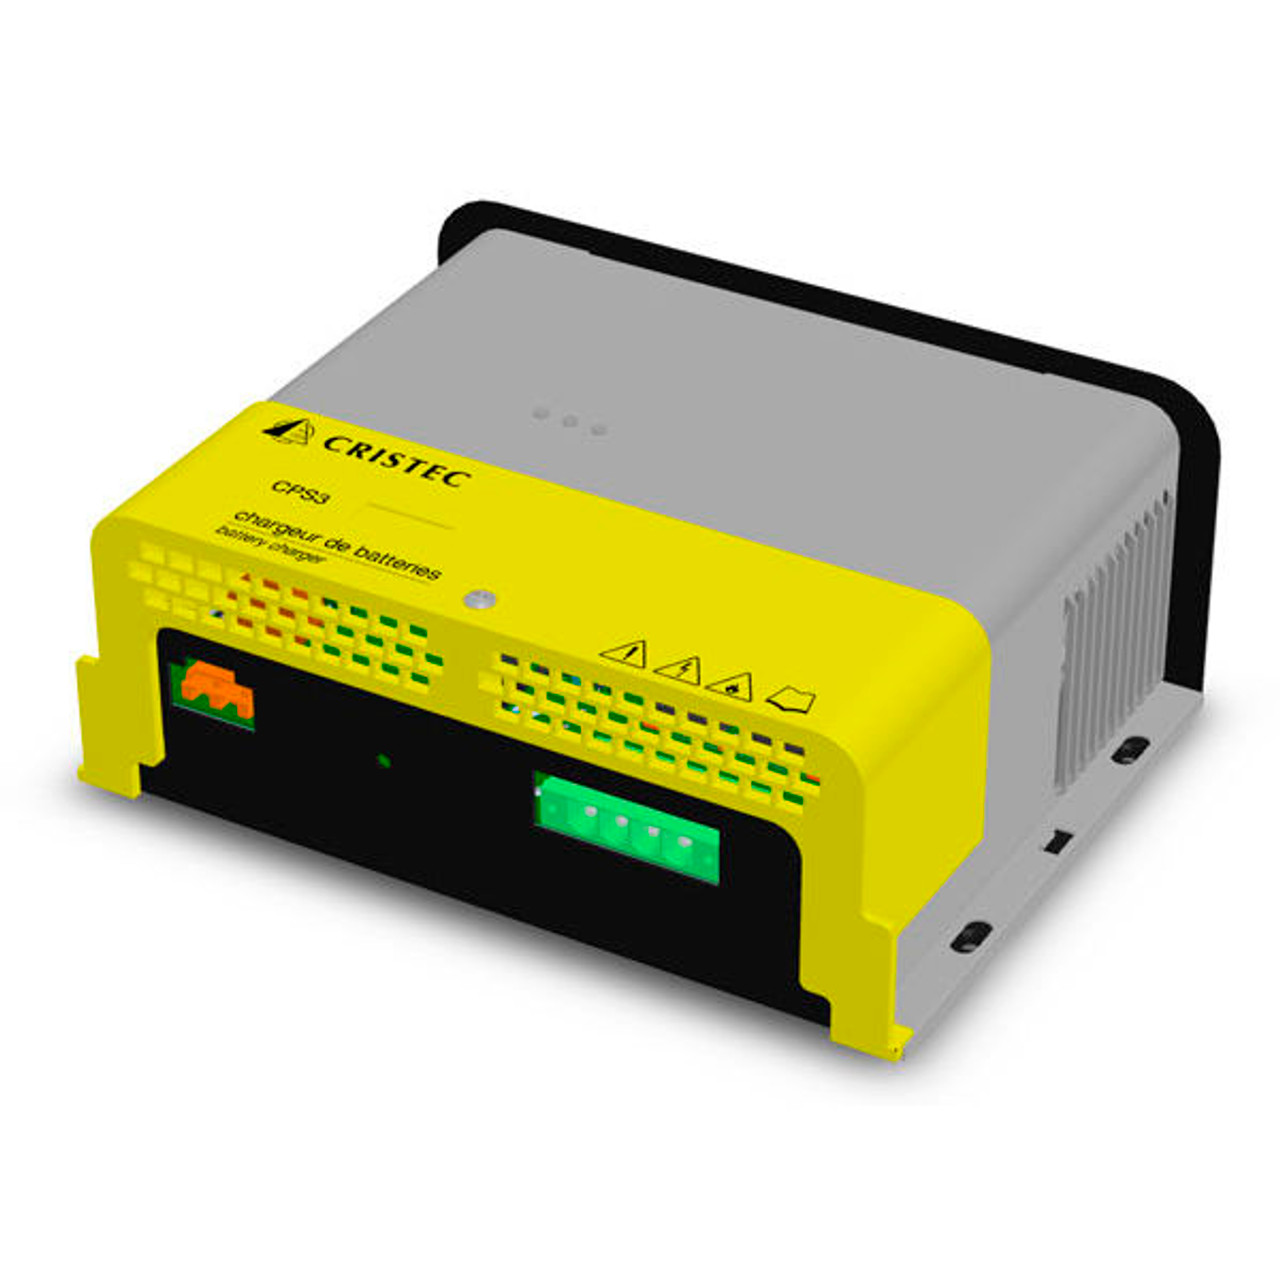 Cristec CPS3 Battery Charger